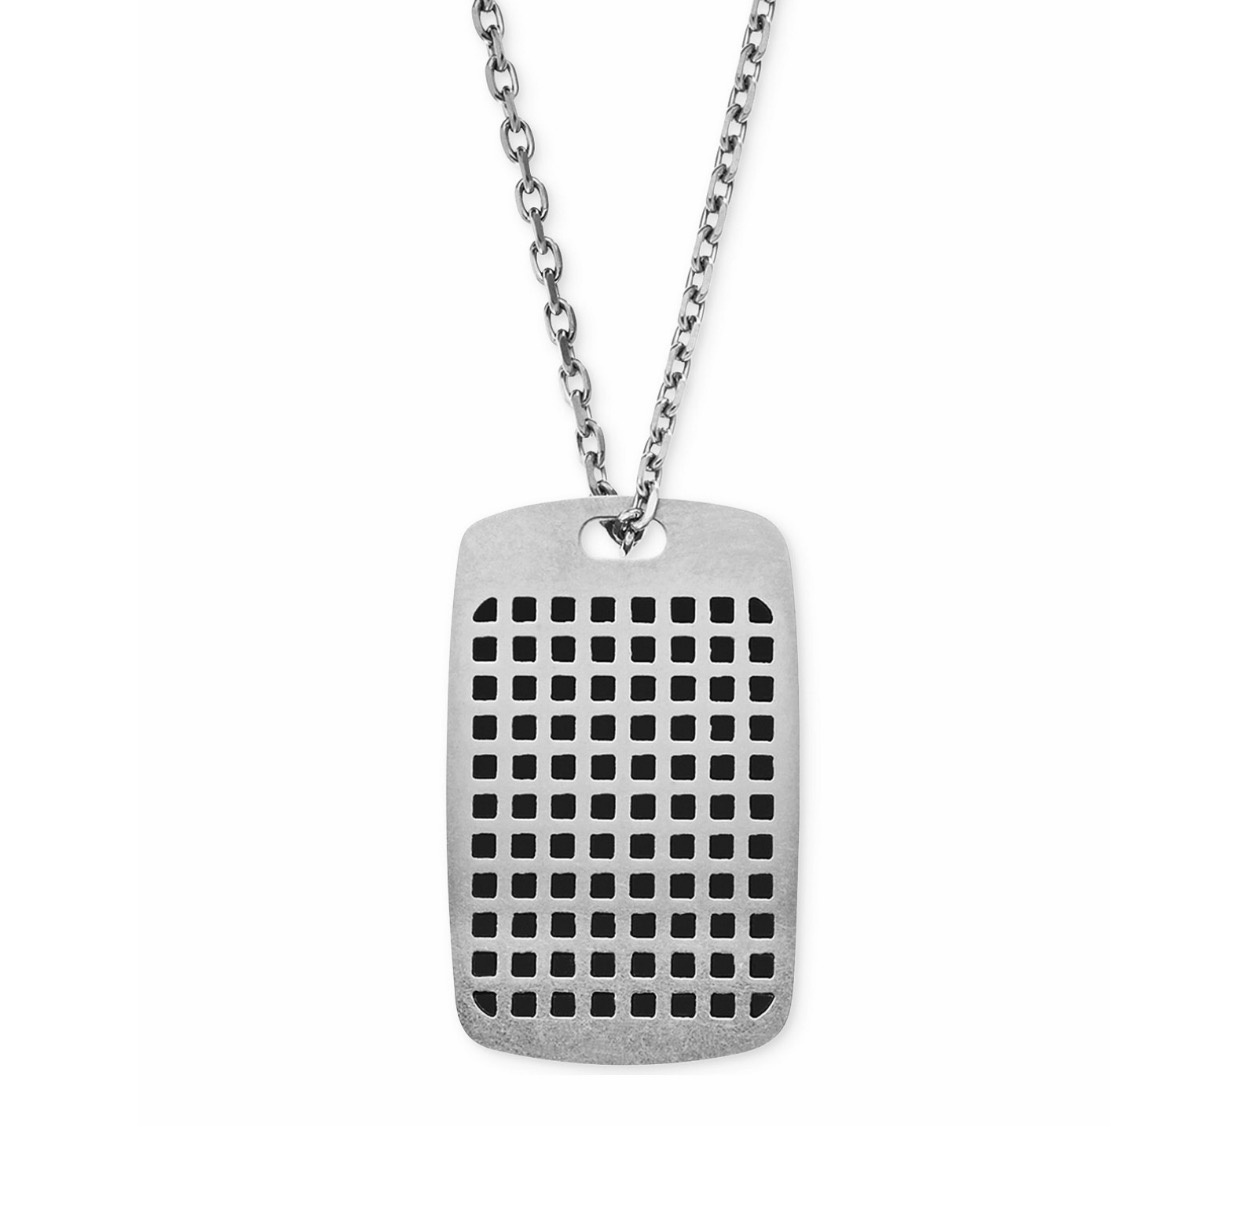 ★Emporio Armani★Men's Stainless Steel Dog Tag Necklace